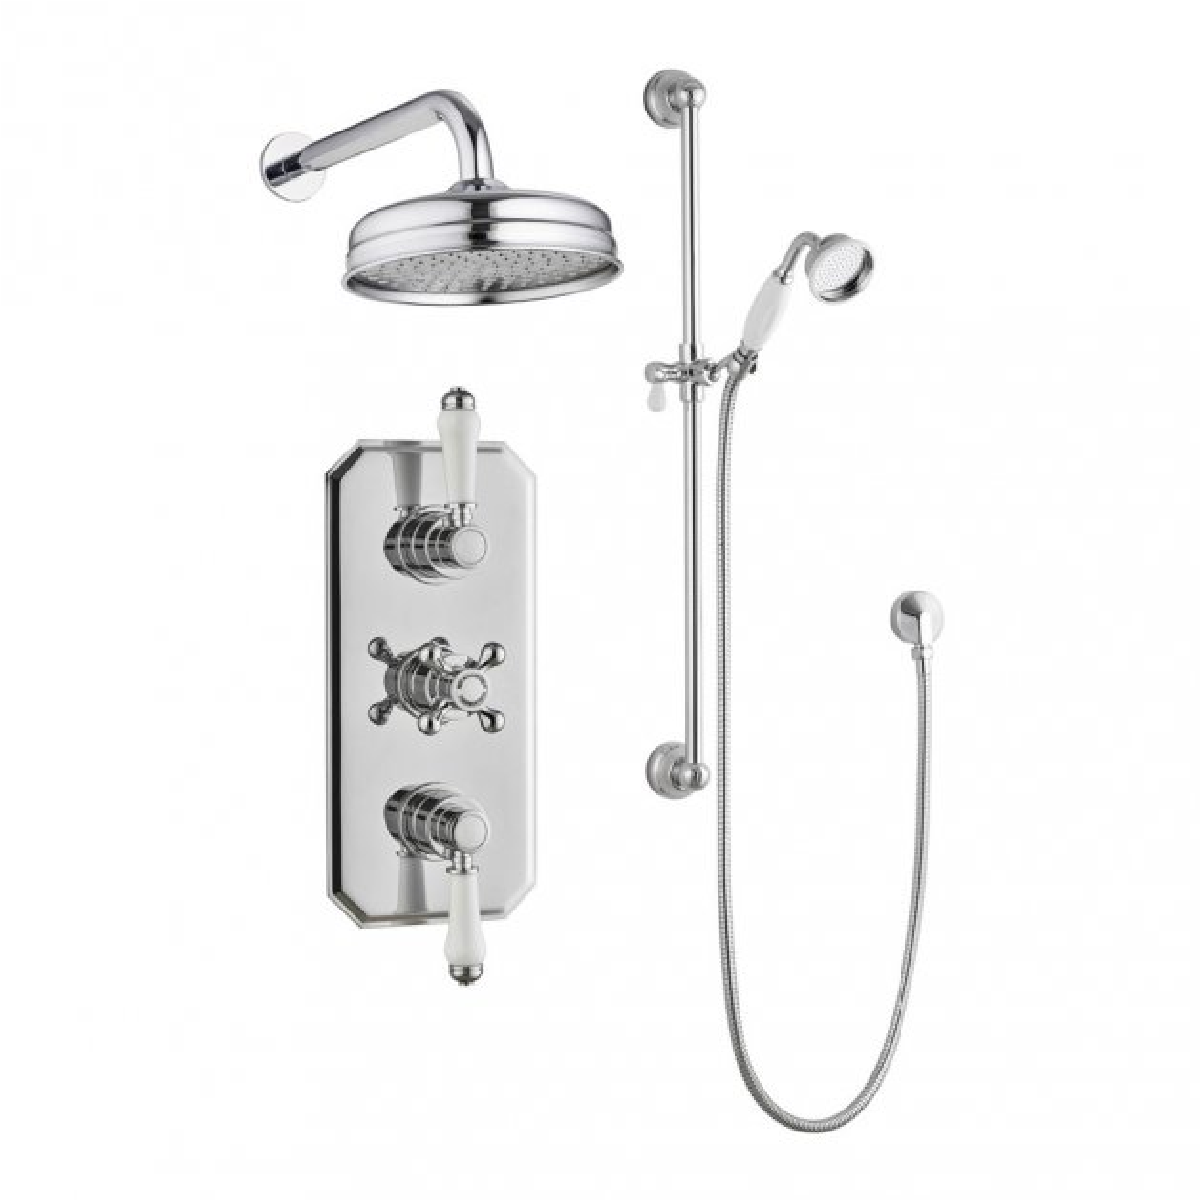 Frontline Holborn Chrome Twin Concealed Thermostatic Shower Valve With Diverter